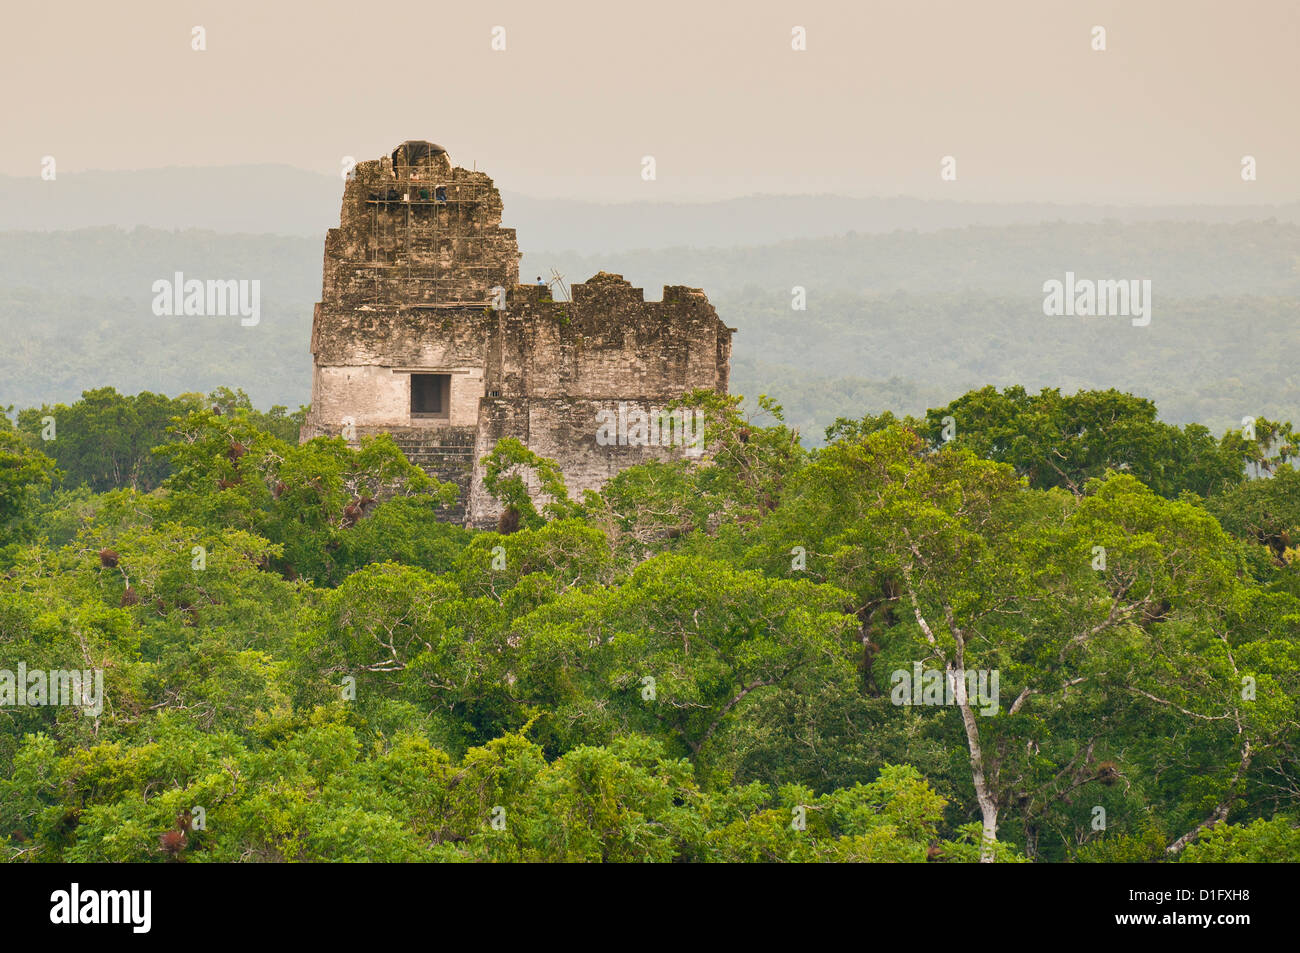 Tikal National Park (Parque Nacional Tikal), UNESCO World Heritage Site, Guatemala, Central America - Stock Image